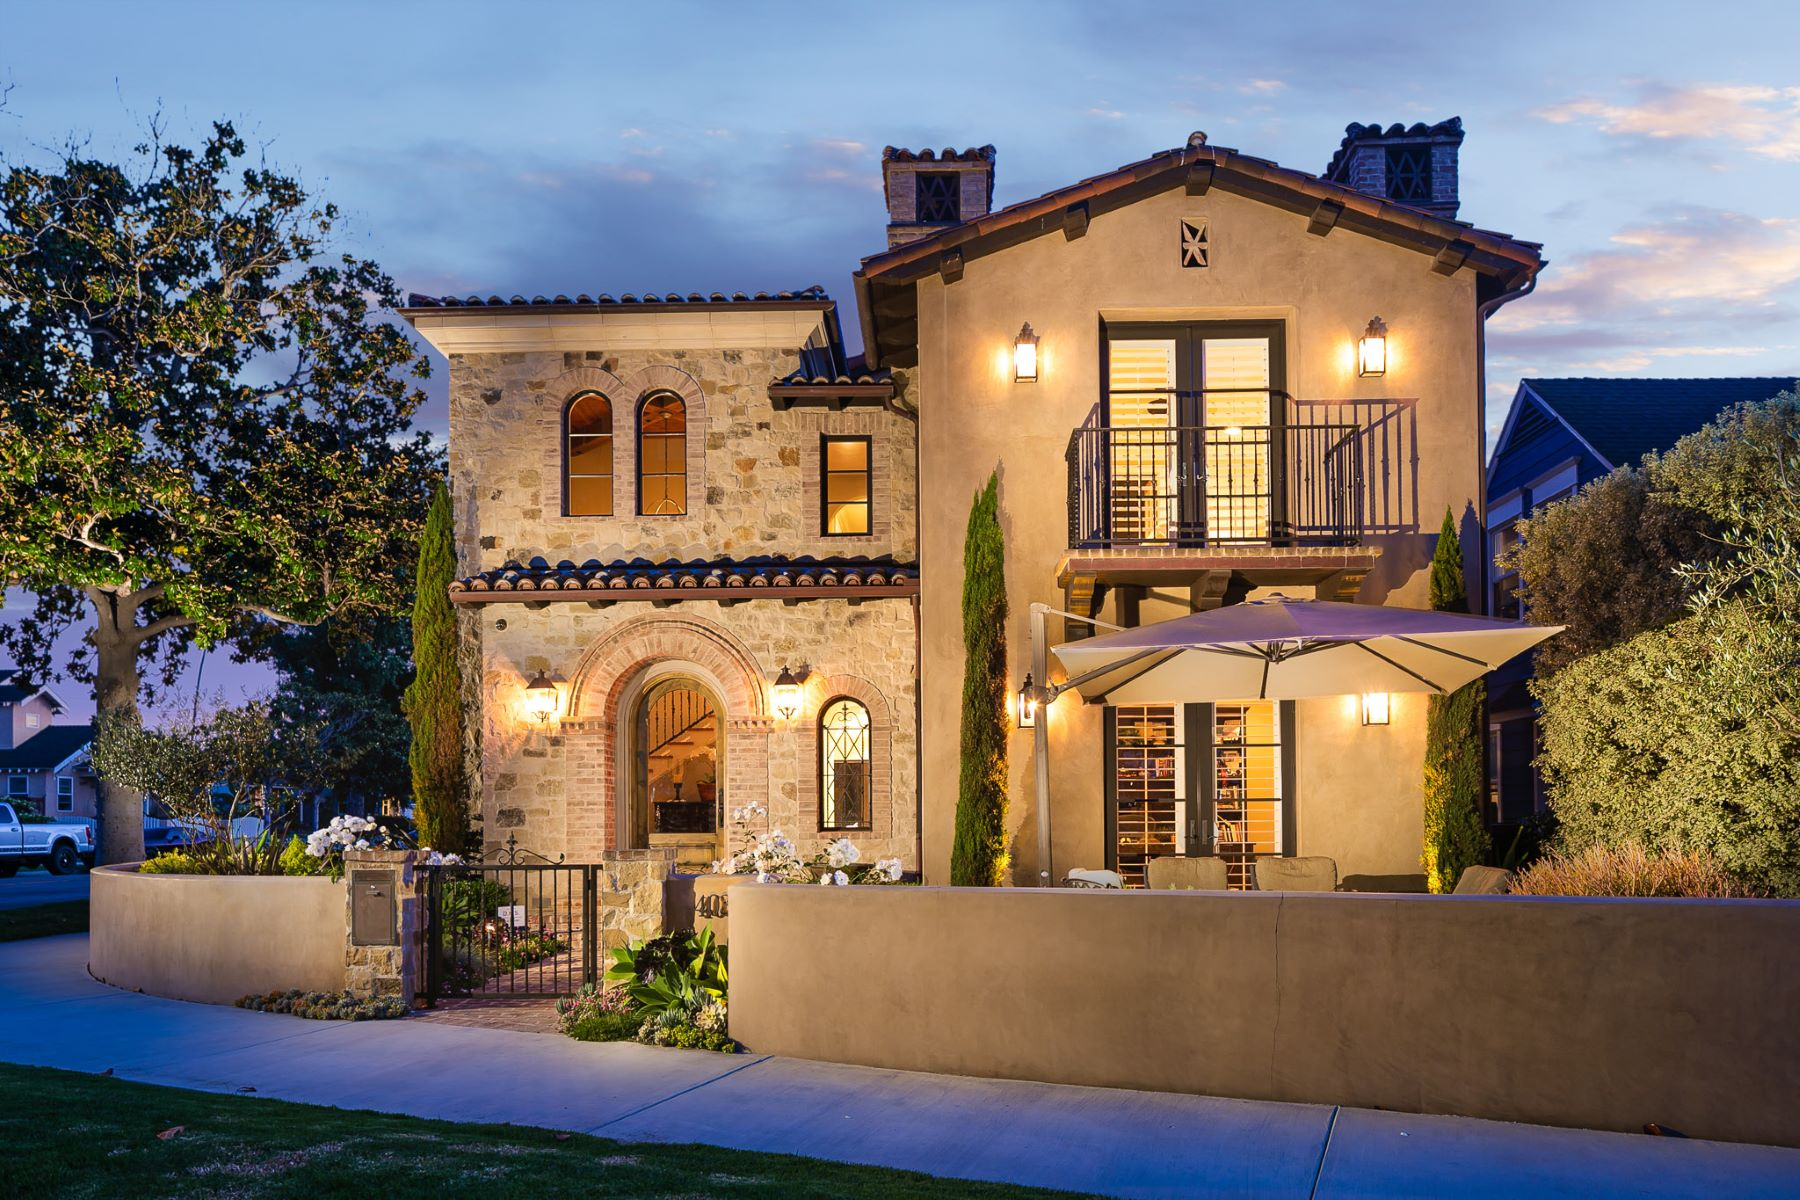 Single Family Homes for Active at 403 Crest Ave Huntington Beach, California 92648 United States